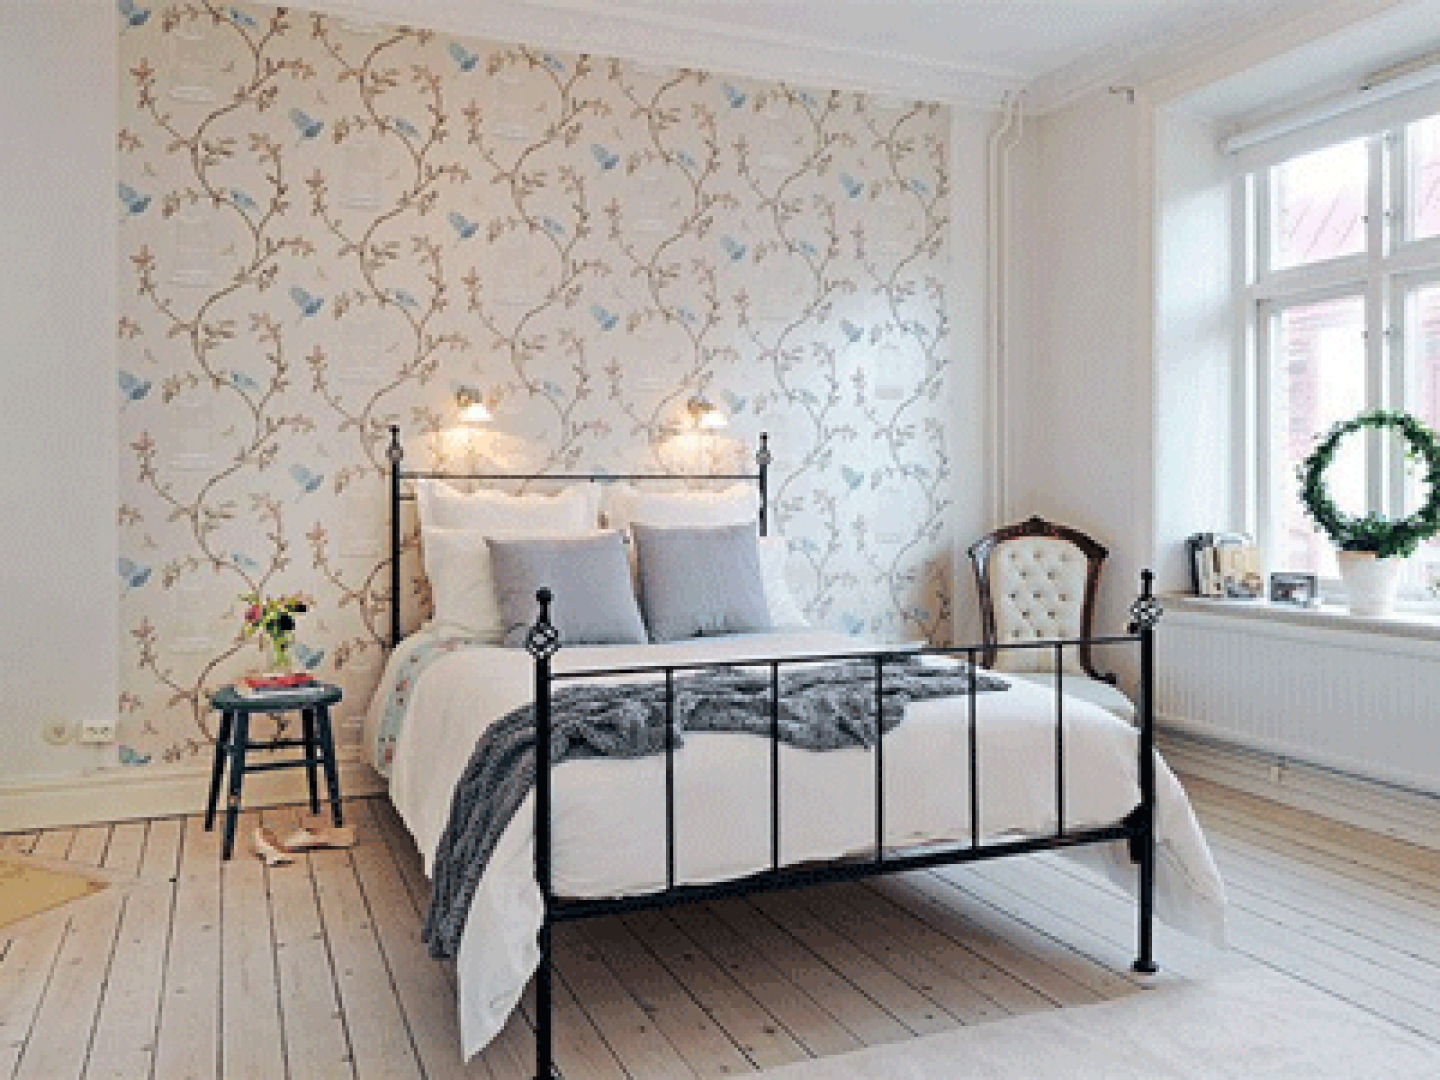 47+] Sophisticated Wallpaper Bedroom Makeovers on ...